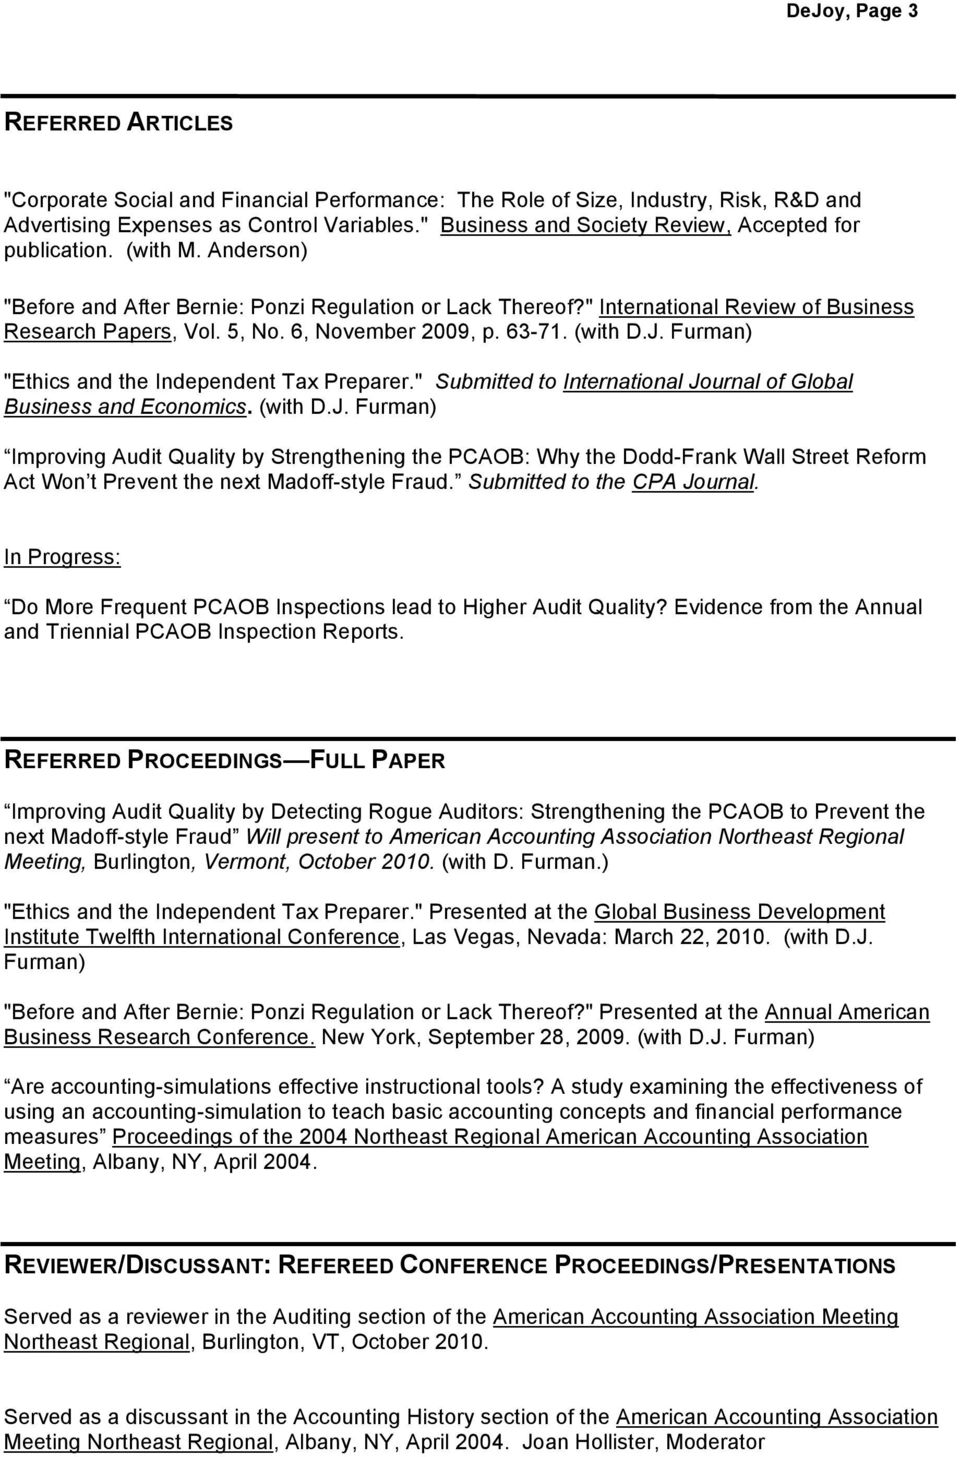 "6, November 2009, p. 63-71. (with D.J. Furman) ""Ethics and the Independent Tax Preparer."" Submitted to International Journal of Global Business and Economics. (with D.J. Furman) Improving Audit Quality by Strengthening the PCAOB: Why the Dodd-Frank Wall Street Reform Act Won t Prevent the next Madoff-style Fraud."